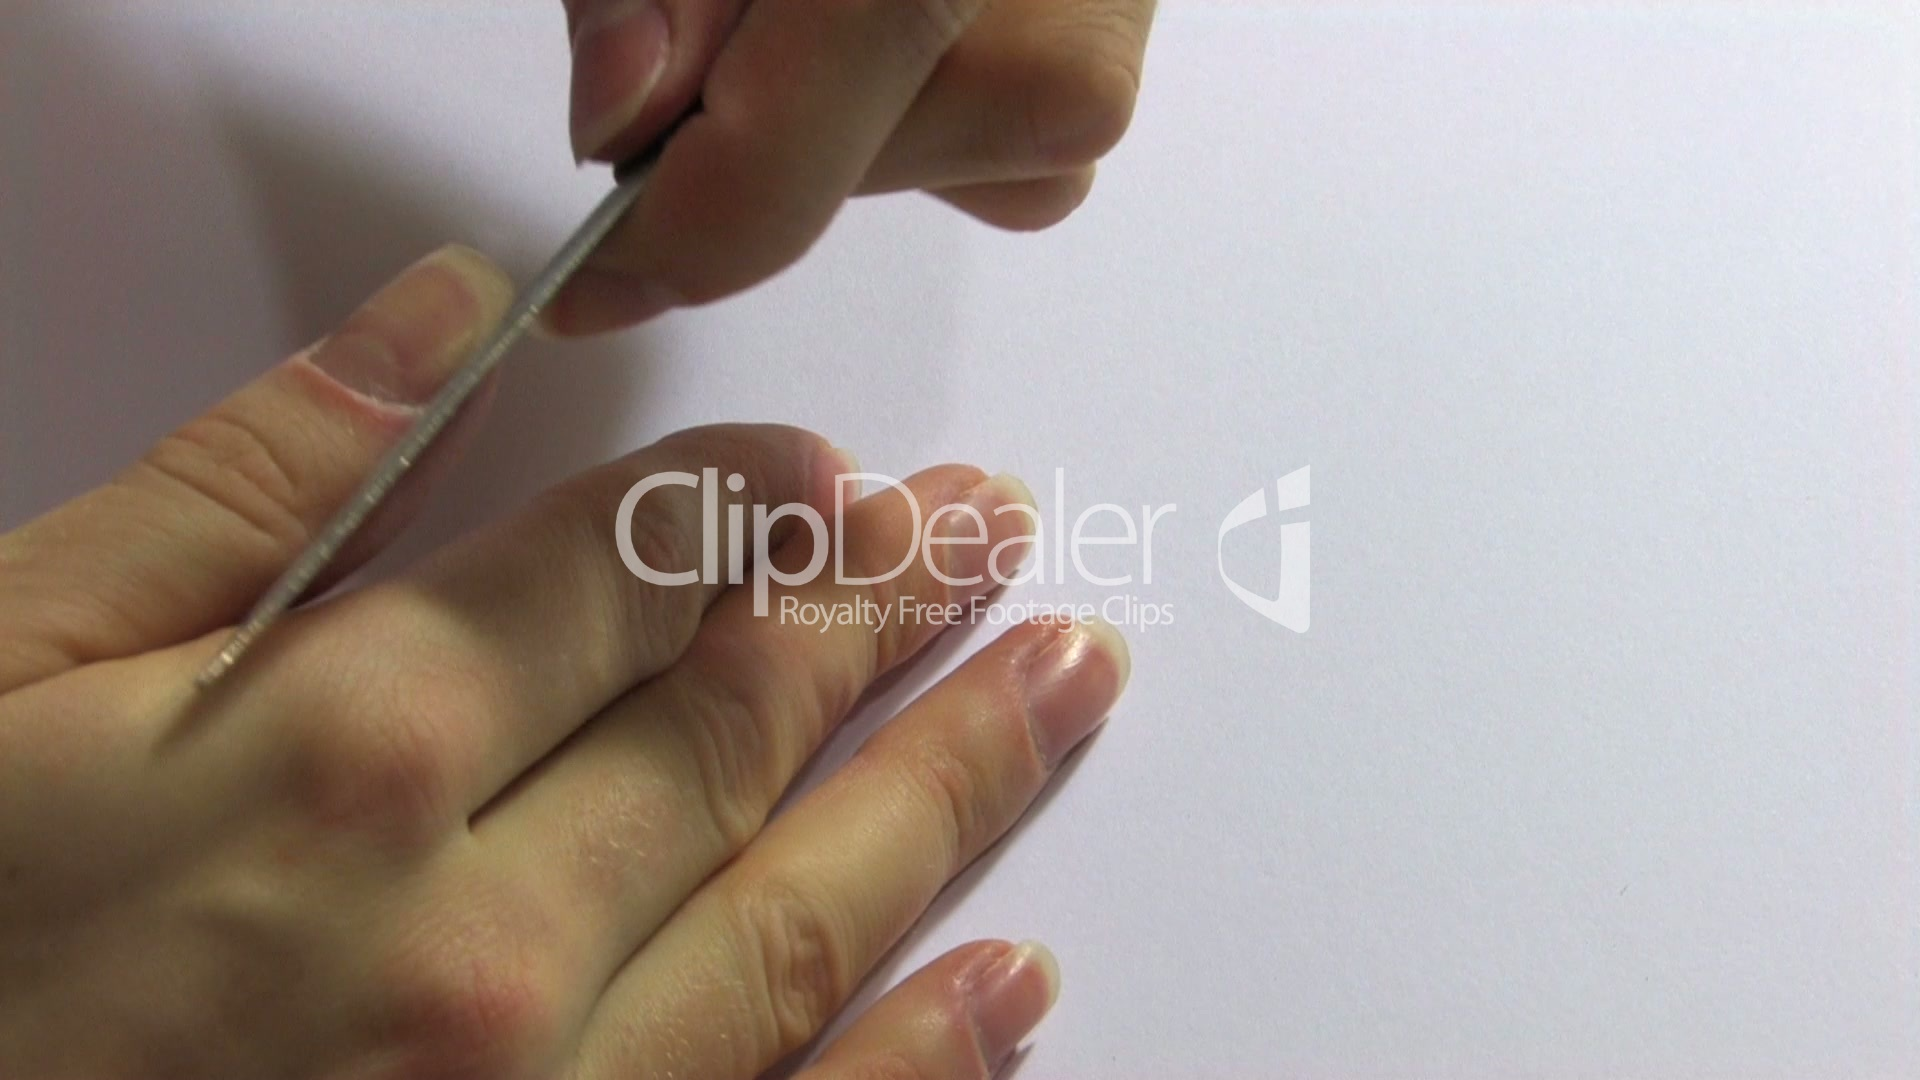 Nail salon at home royalty free video and stock footage for 20 20 nail salon